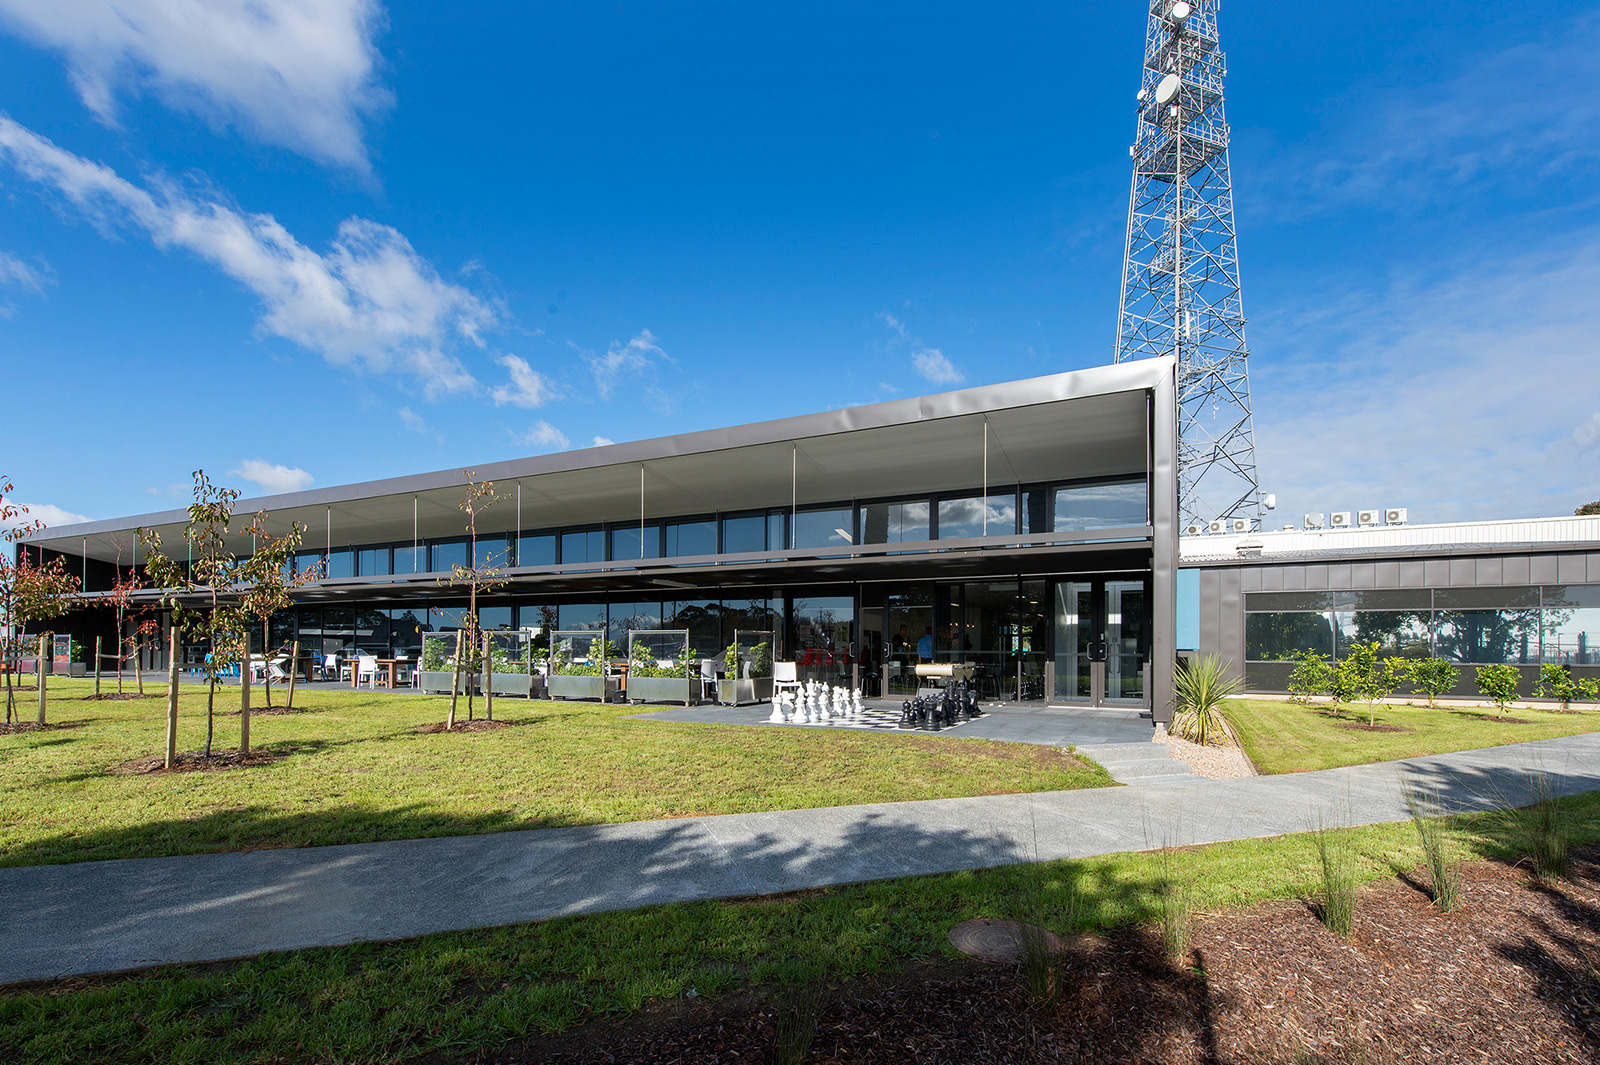 Construction-Company-Aspec-Transpower-New-Offices-4